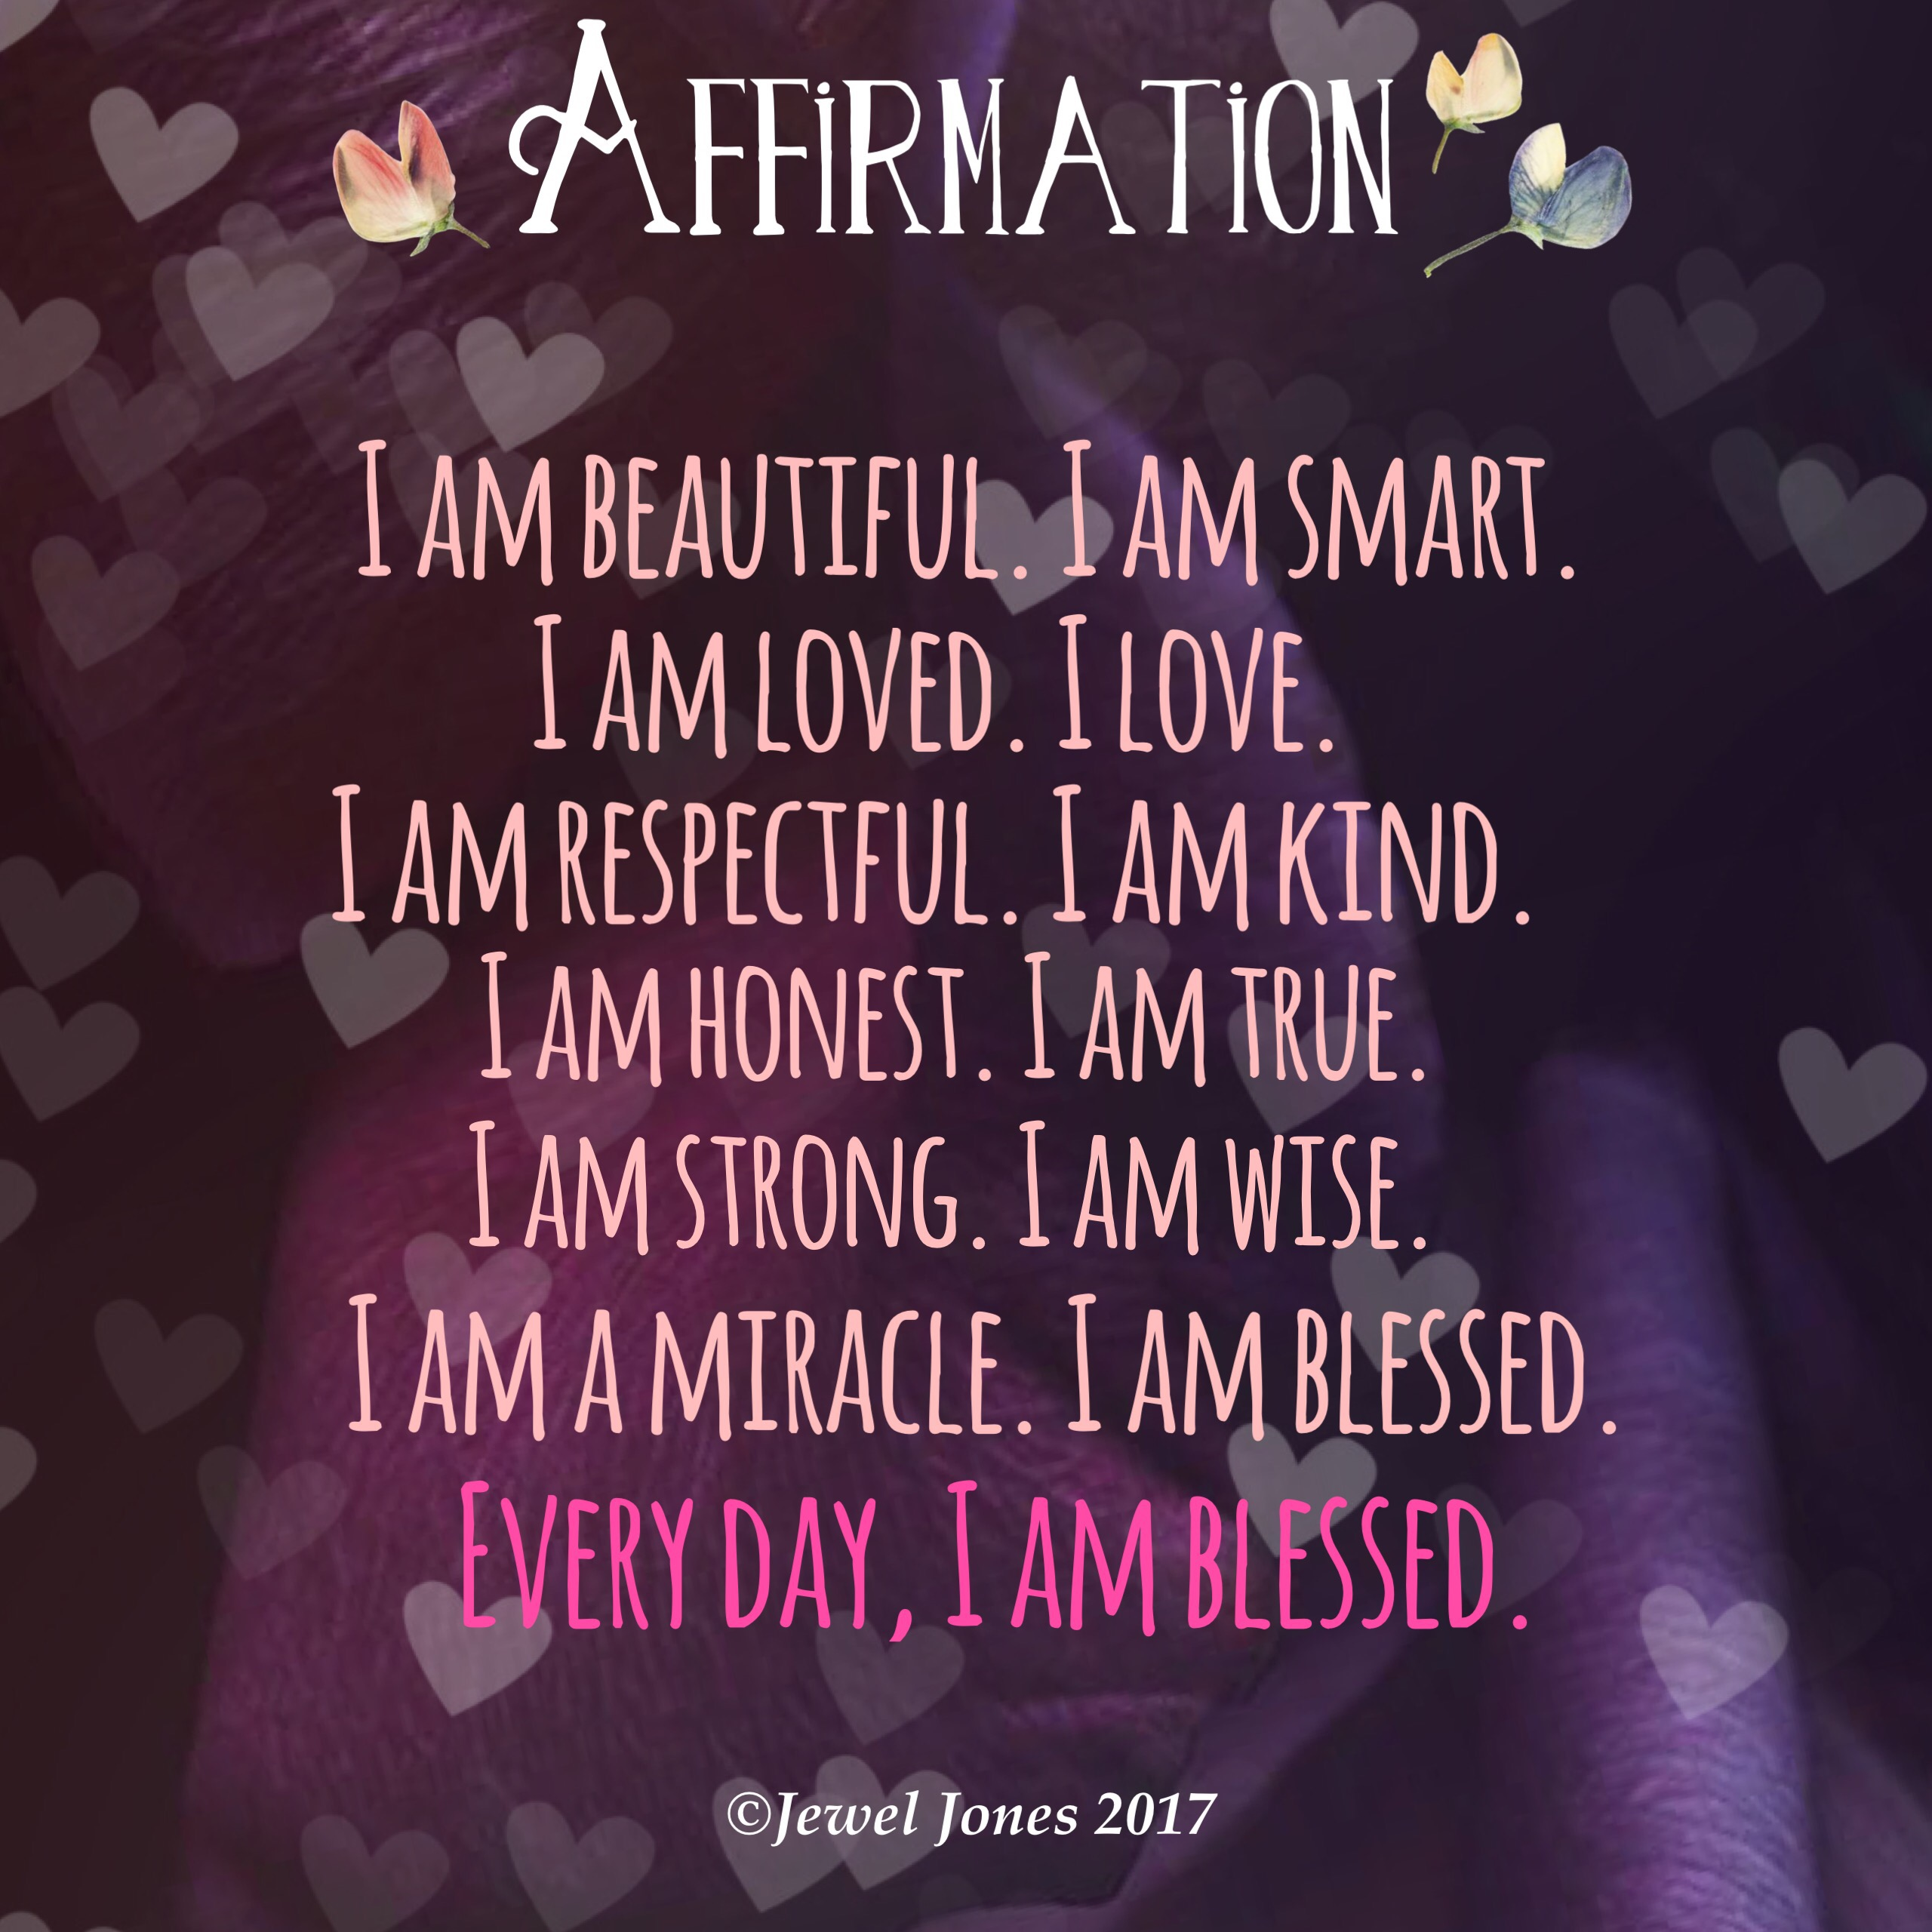 Here are my basic morning affirmations. I add to them when I am guided to.